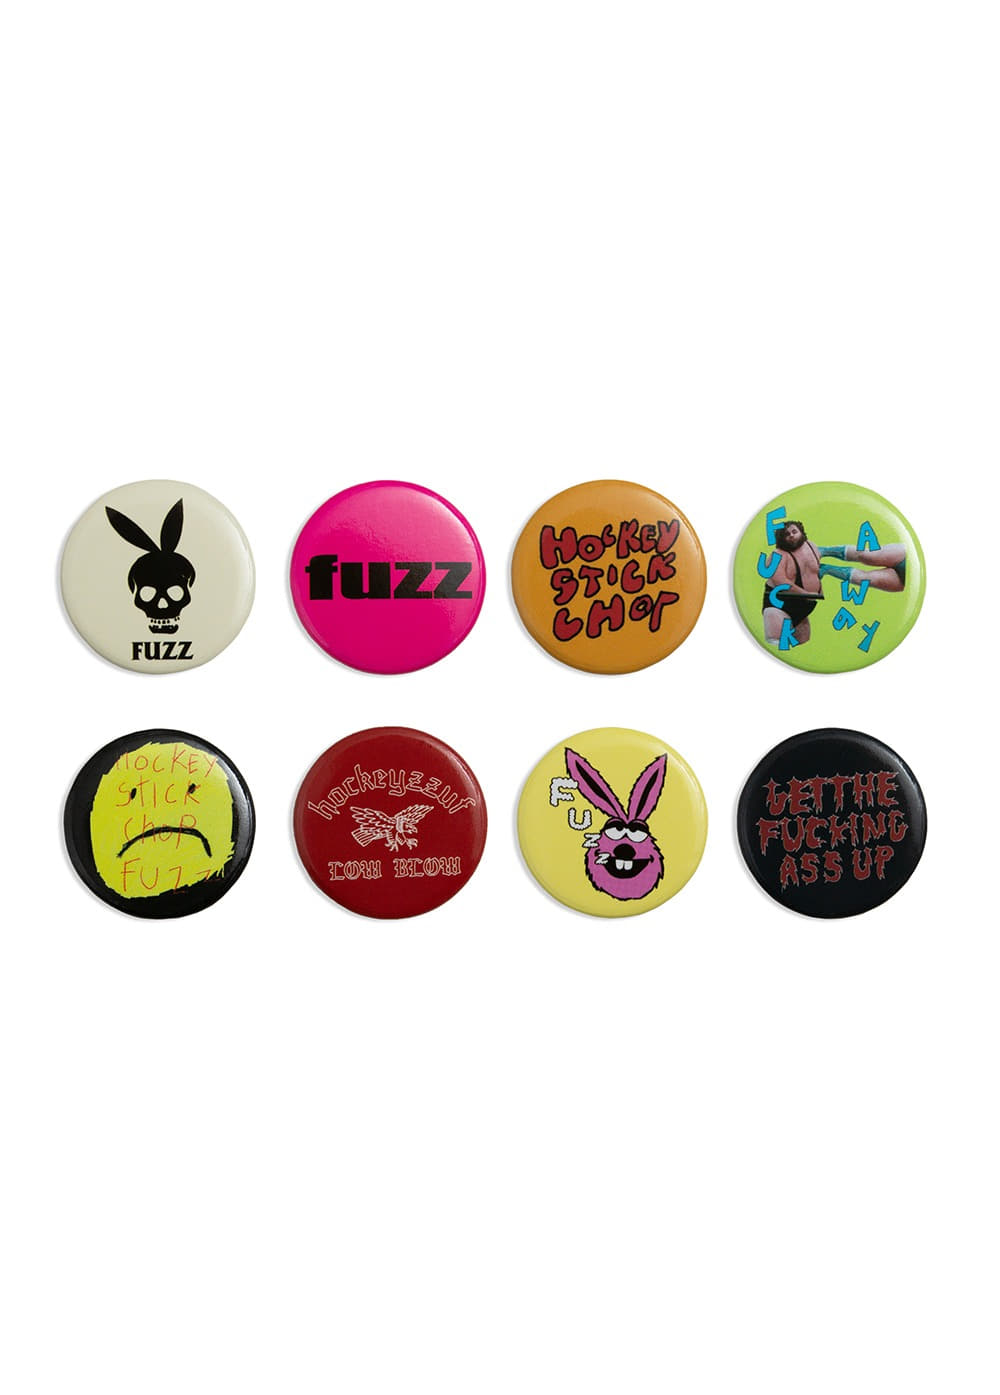 FUZZ X HOCKEY STICK CHOP PIN BUTTON PACK